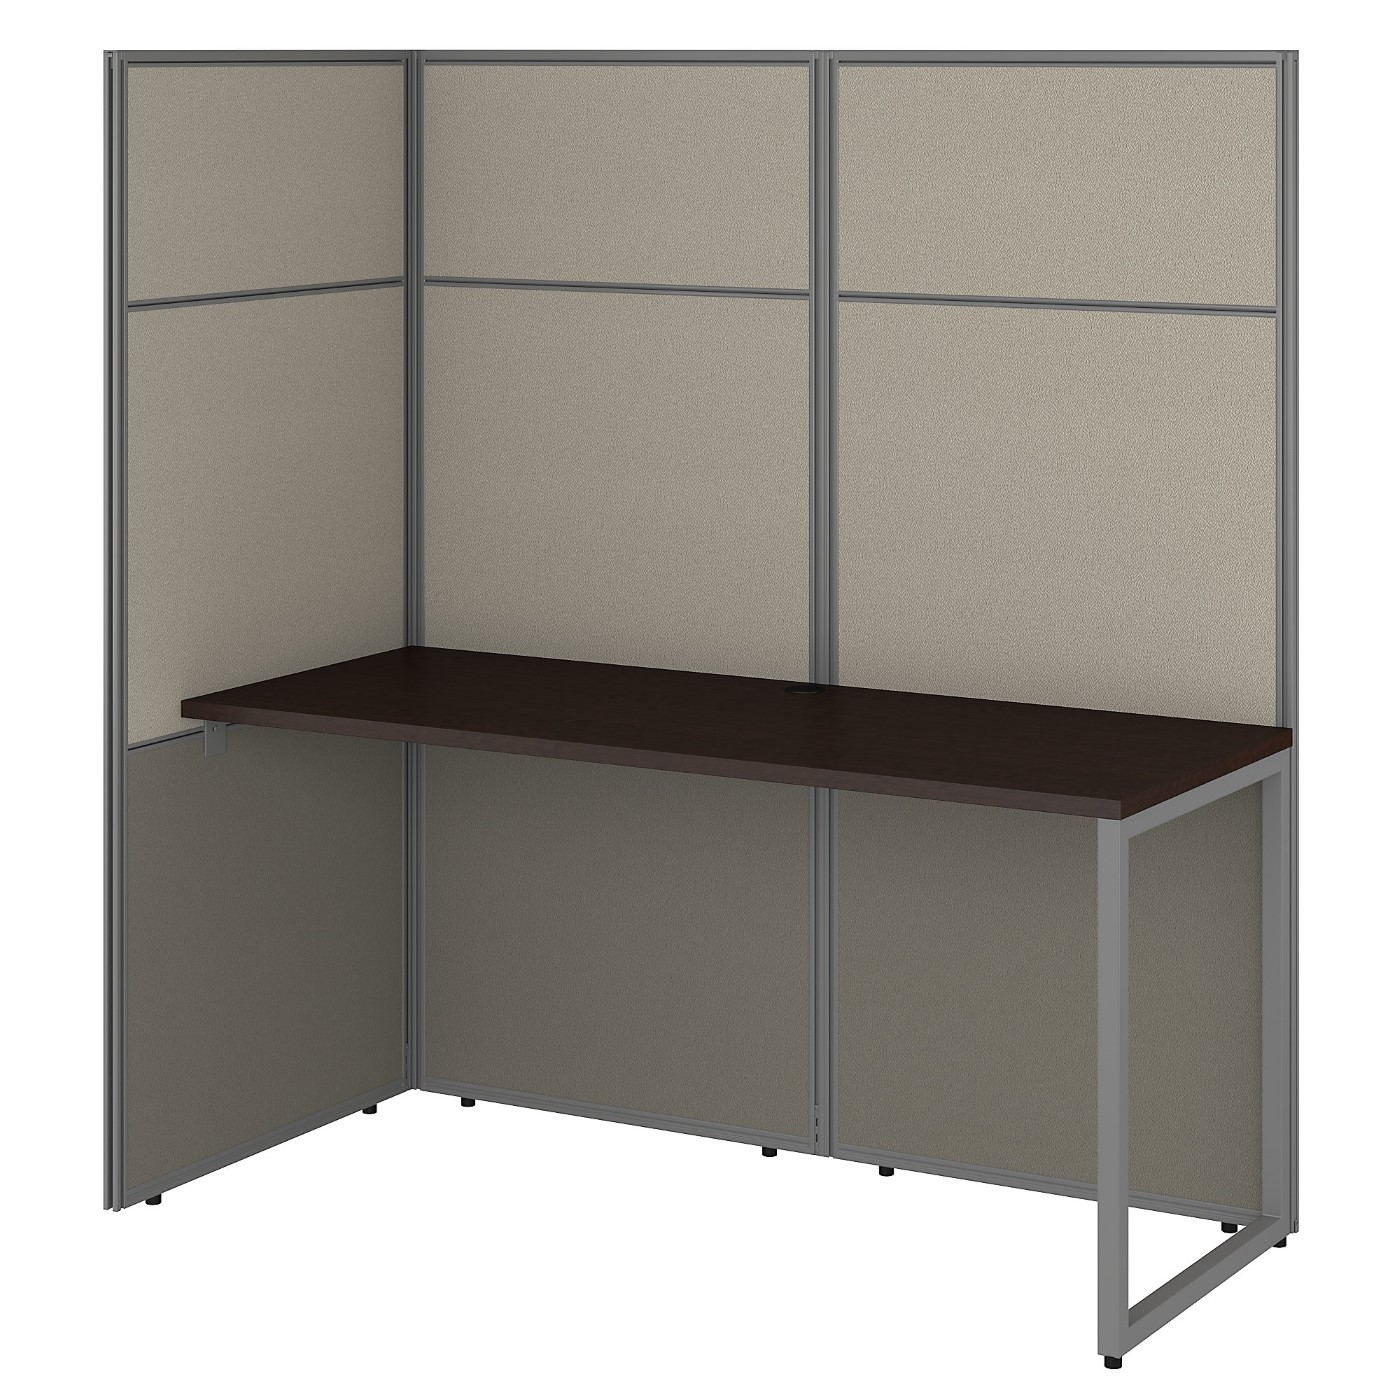 BUSH BUSINESS FURNITURE EASY OFFICE 60W CUBICLE DESK WORKSTATION WITH 66H OPEN PANELS. FREE SHIPPING 30H x 72L x 72W.